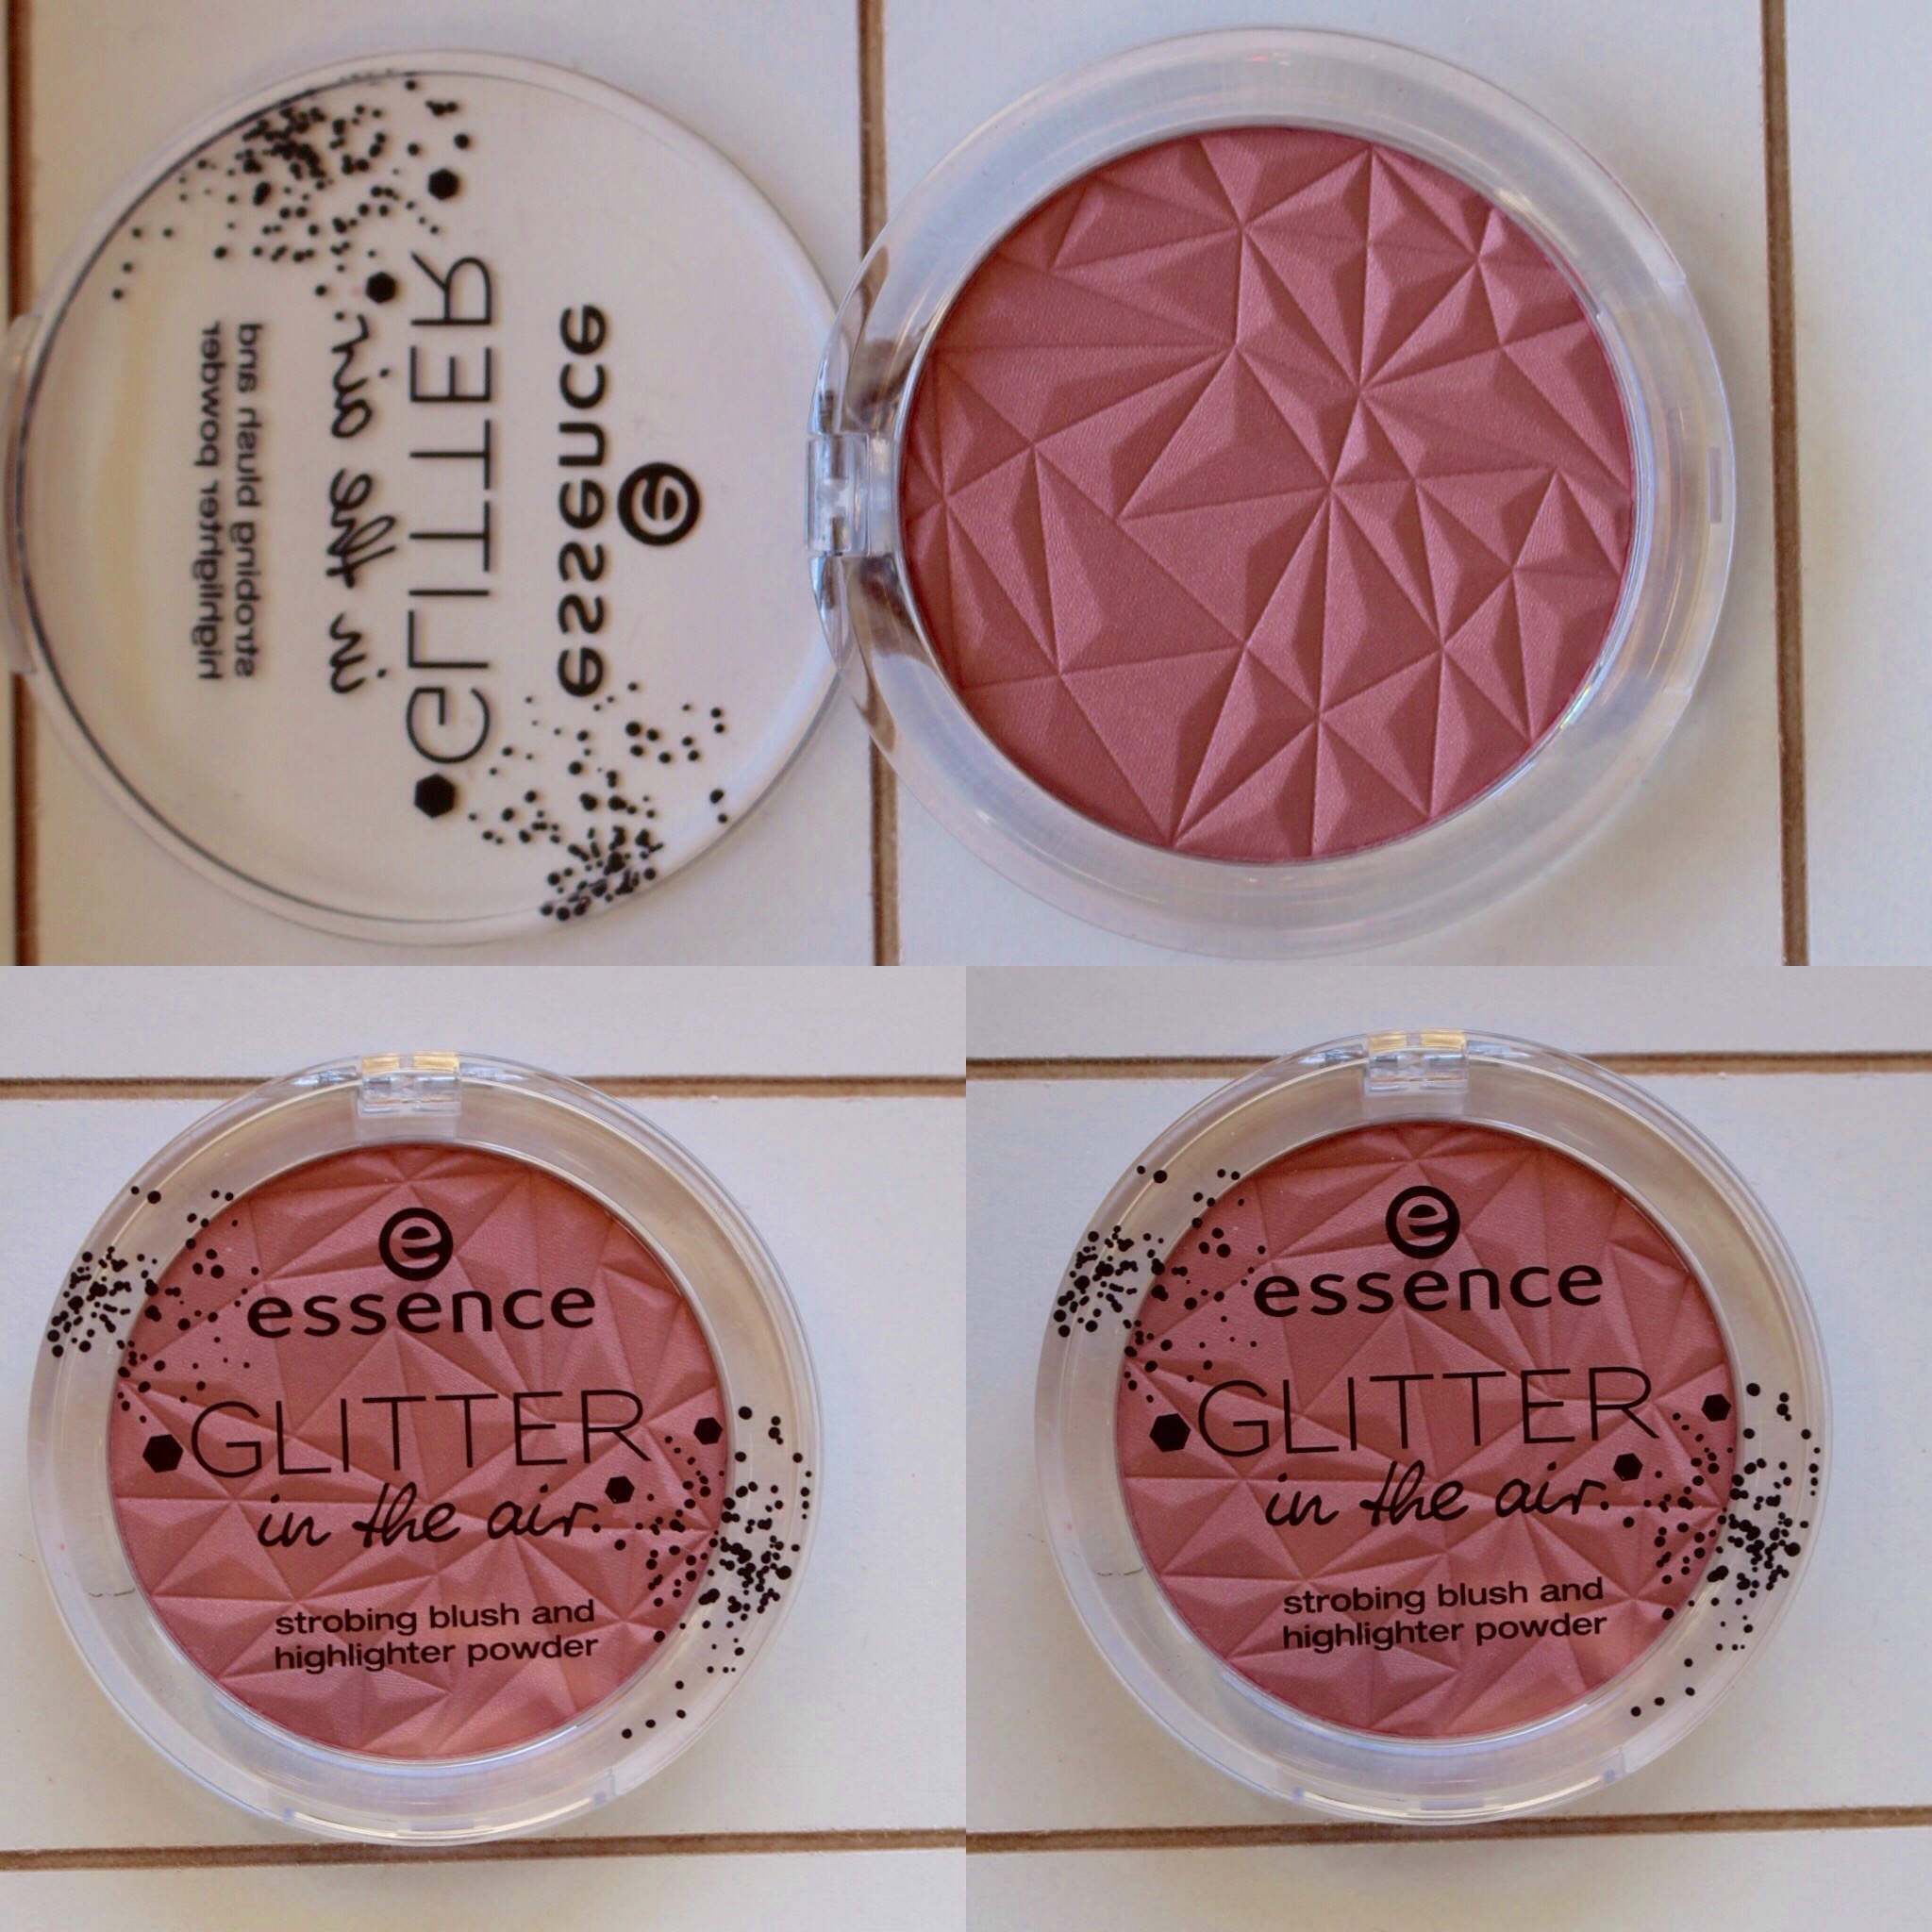 essence glitter in the air strobing blush